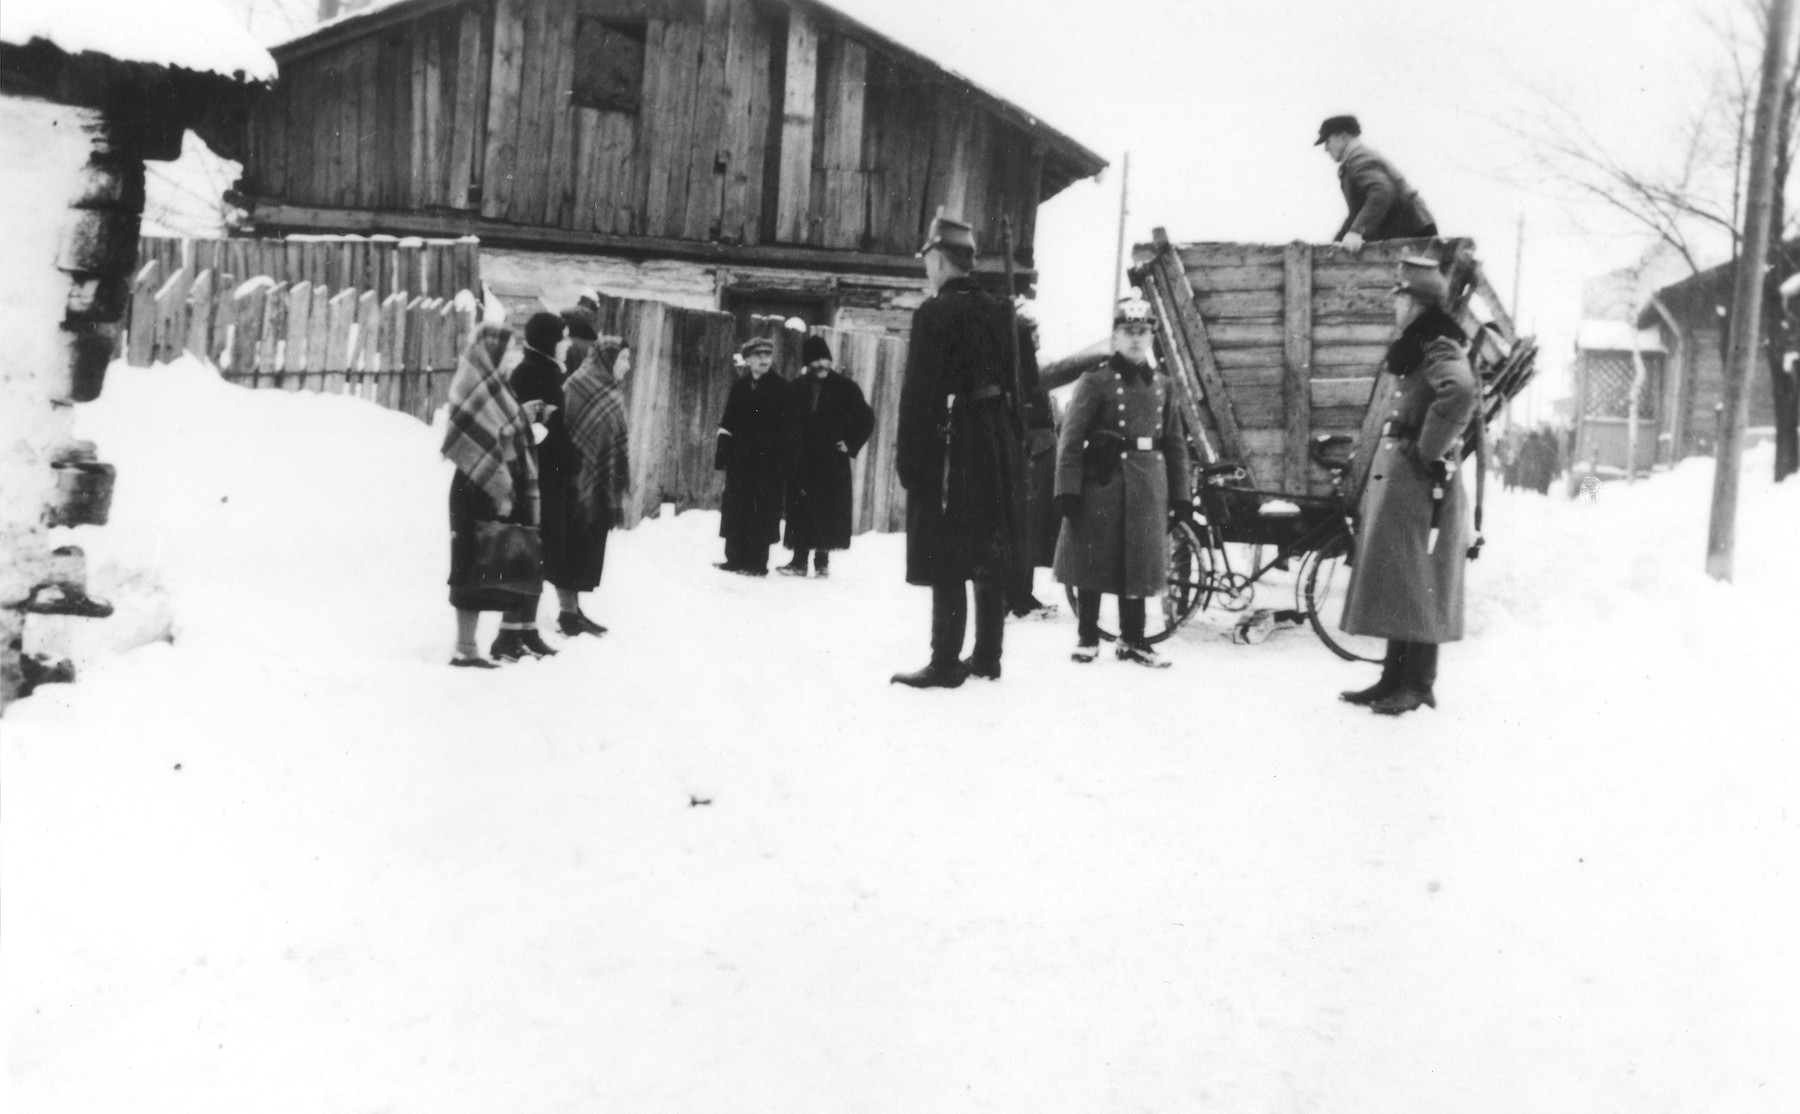 German police stop a group of Jews on a snow covered street in the Zawiercie ghetto.